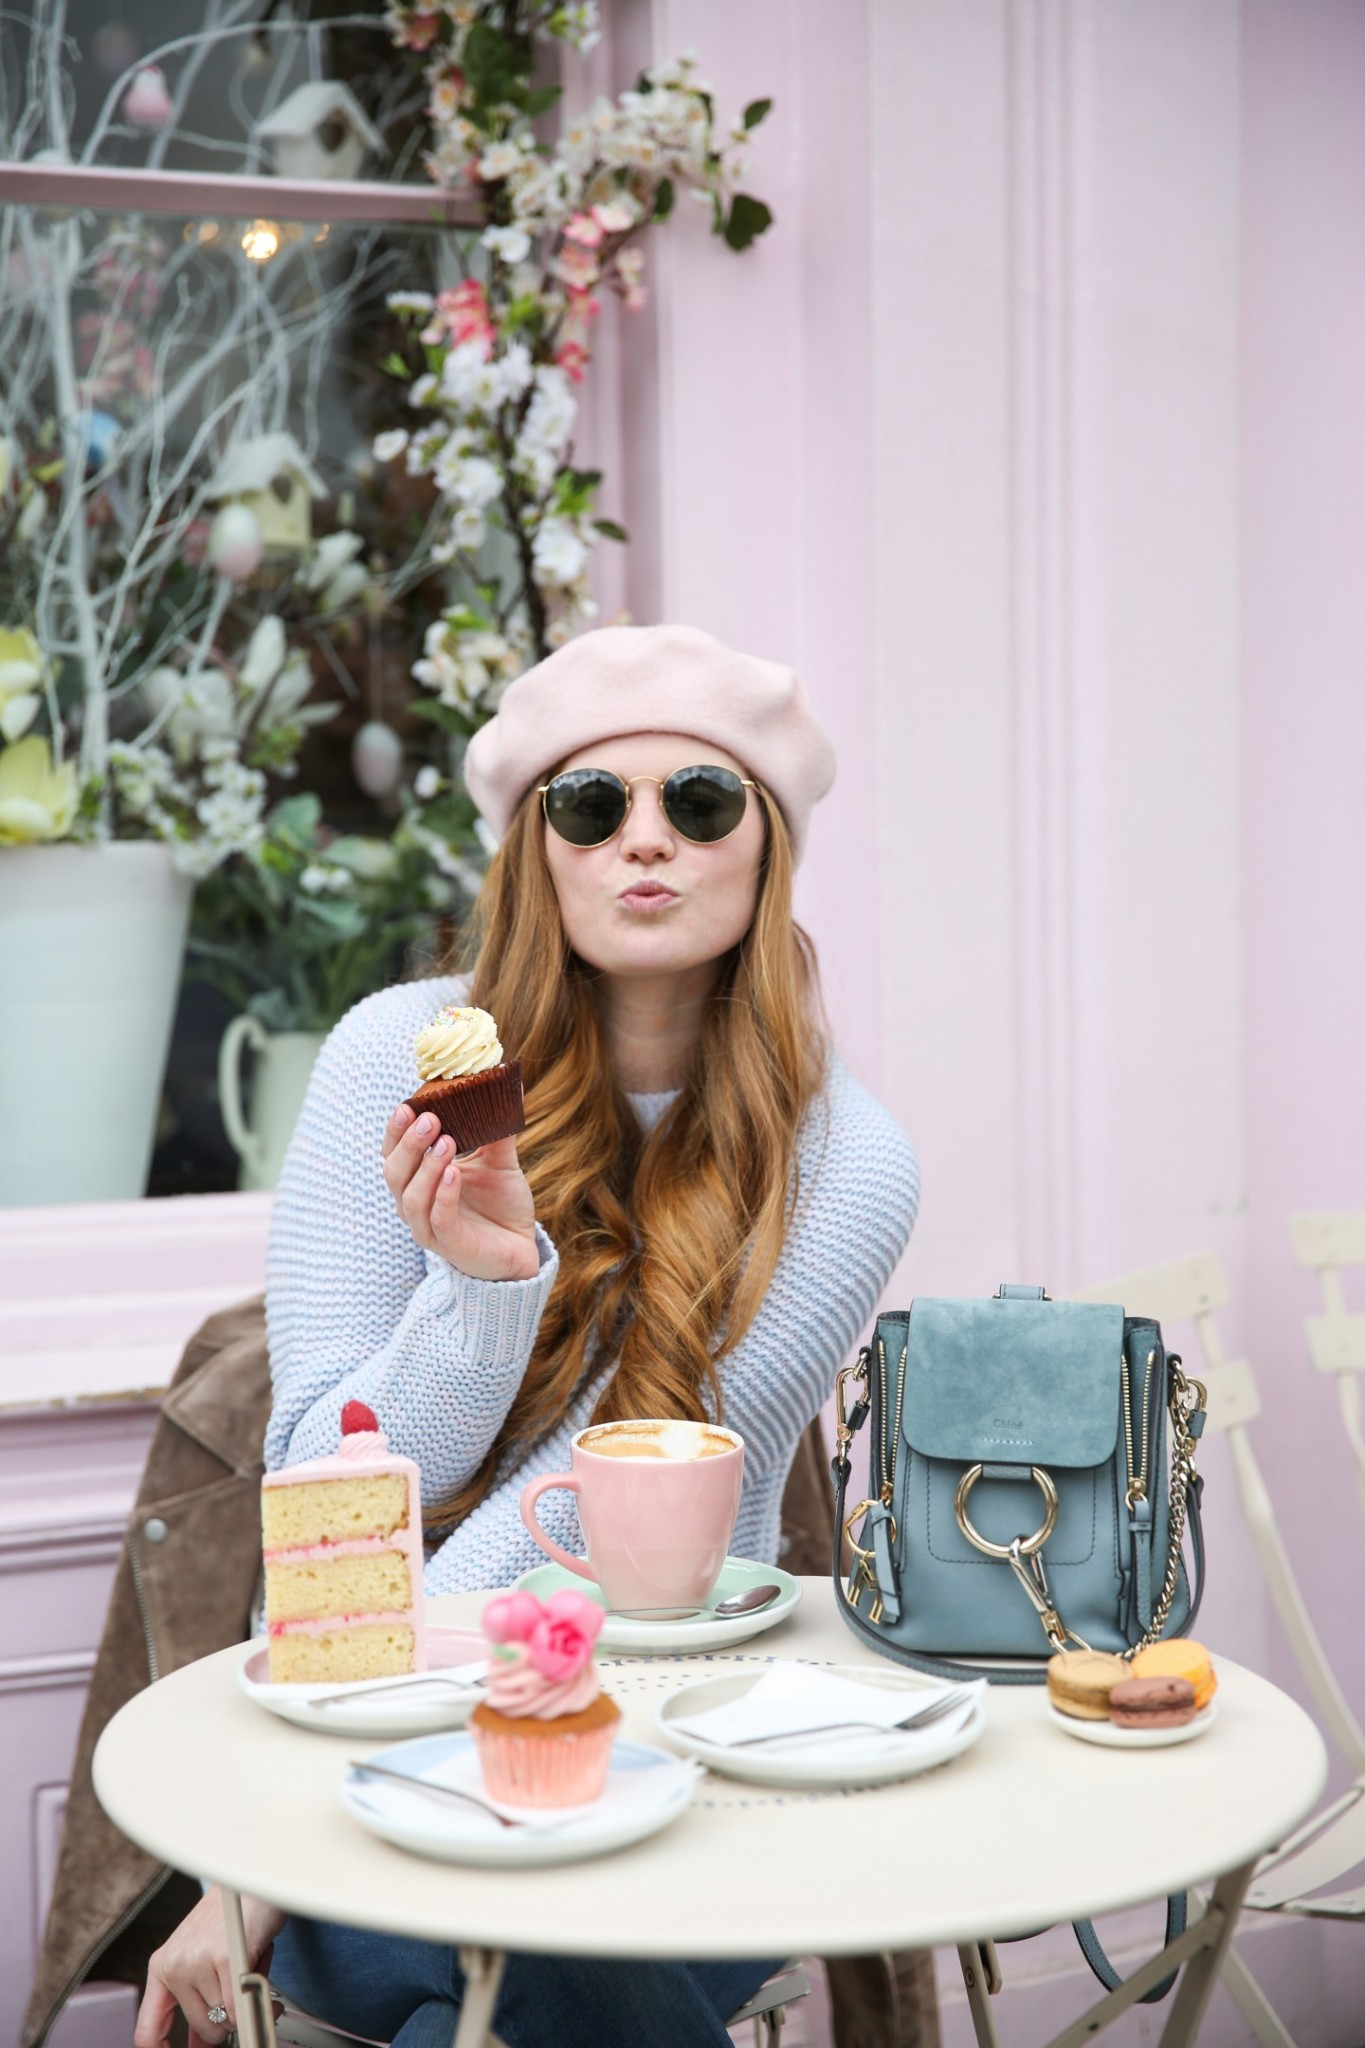 Lifestyle blogger Mollie Moore shares the top 5 most Instagram-worthy cafes in London   The Best Instagram Cafes in London featured by top London blogger, Mollie Moore